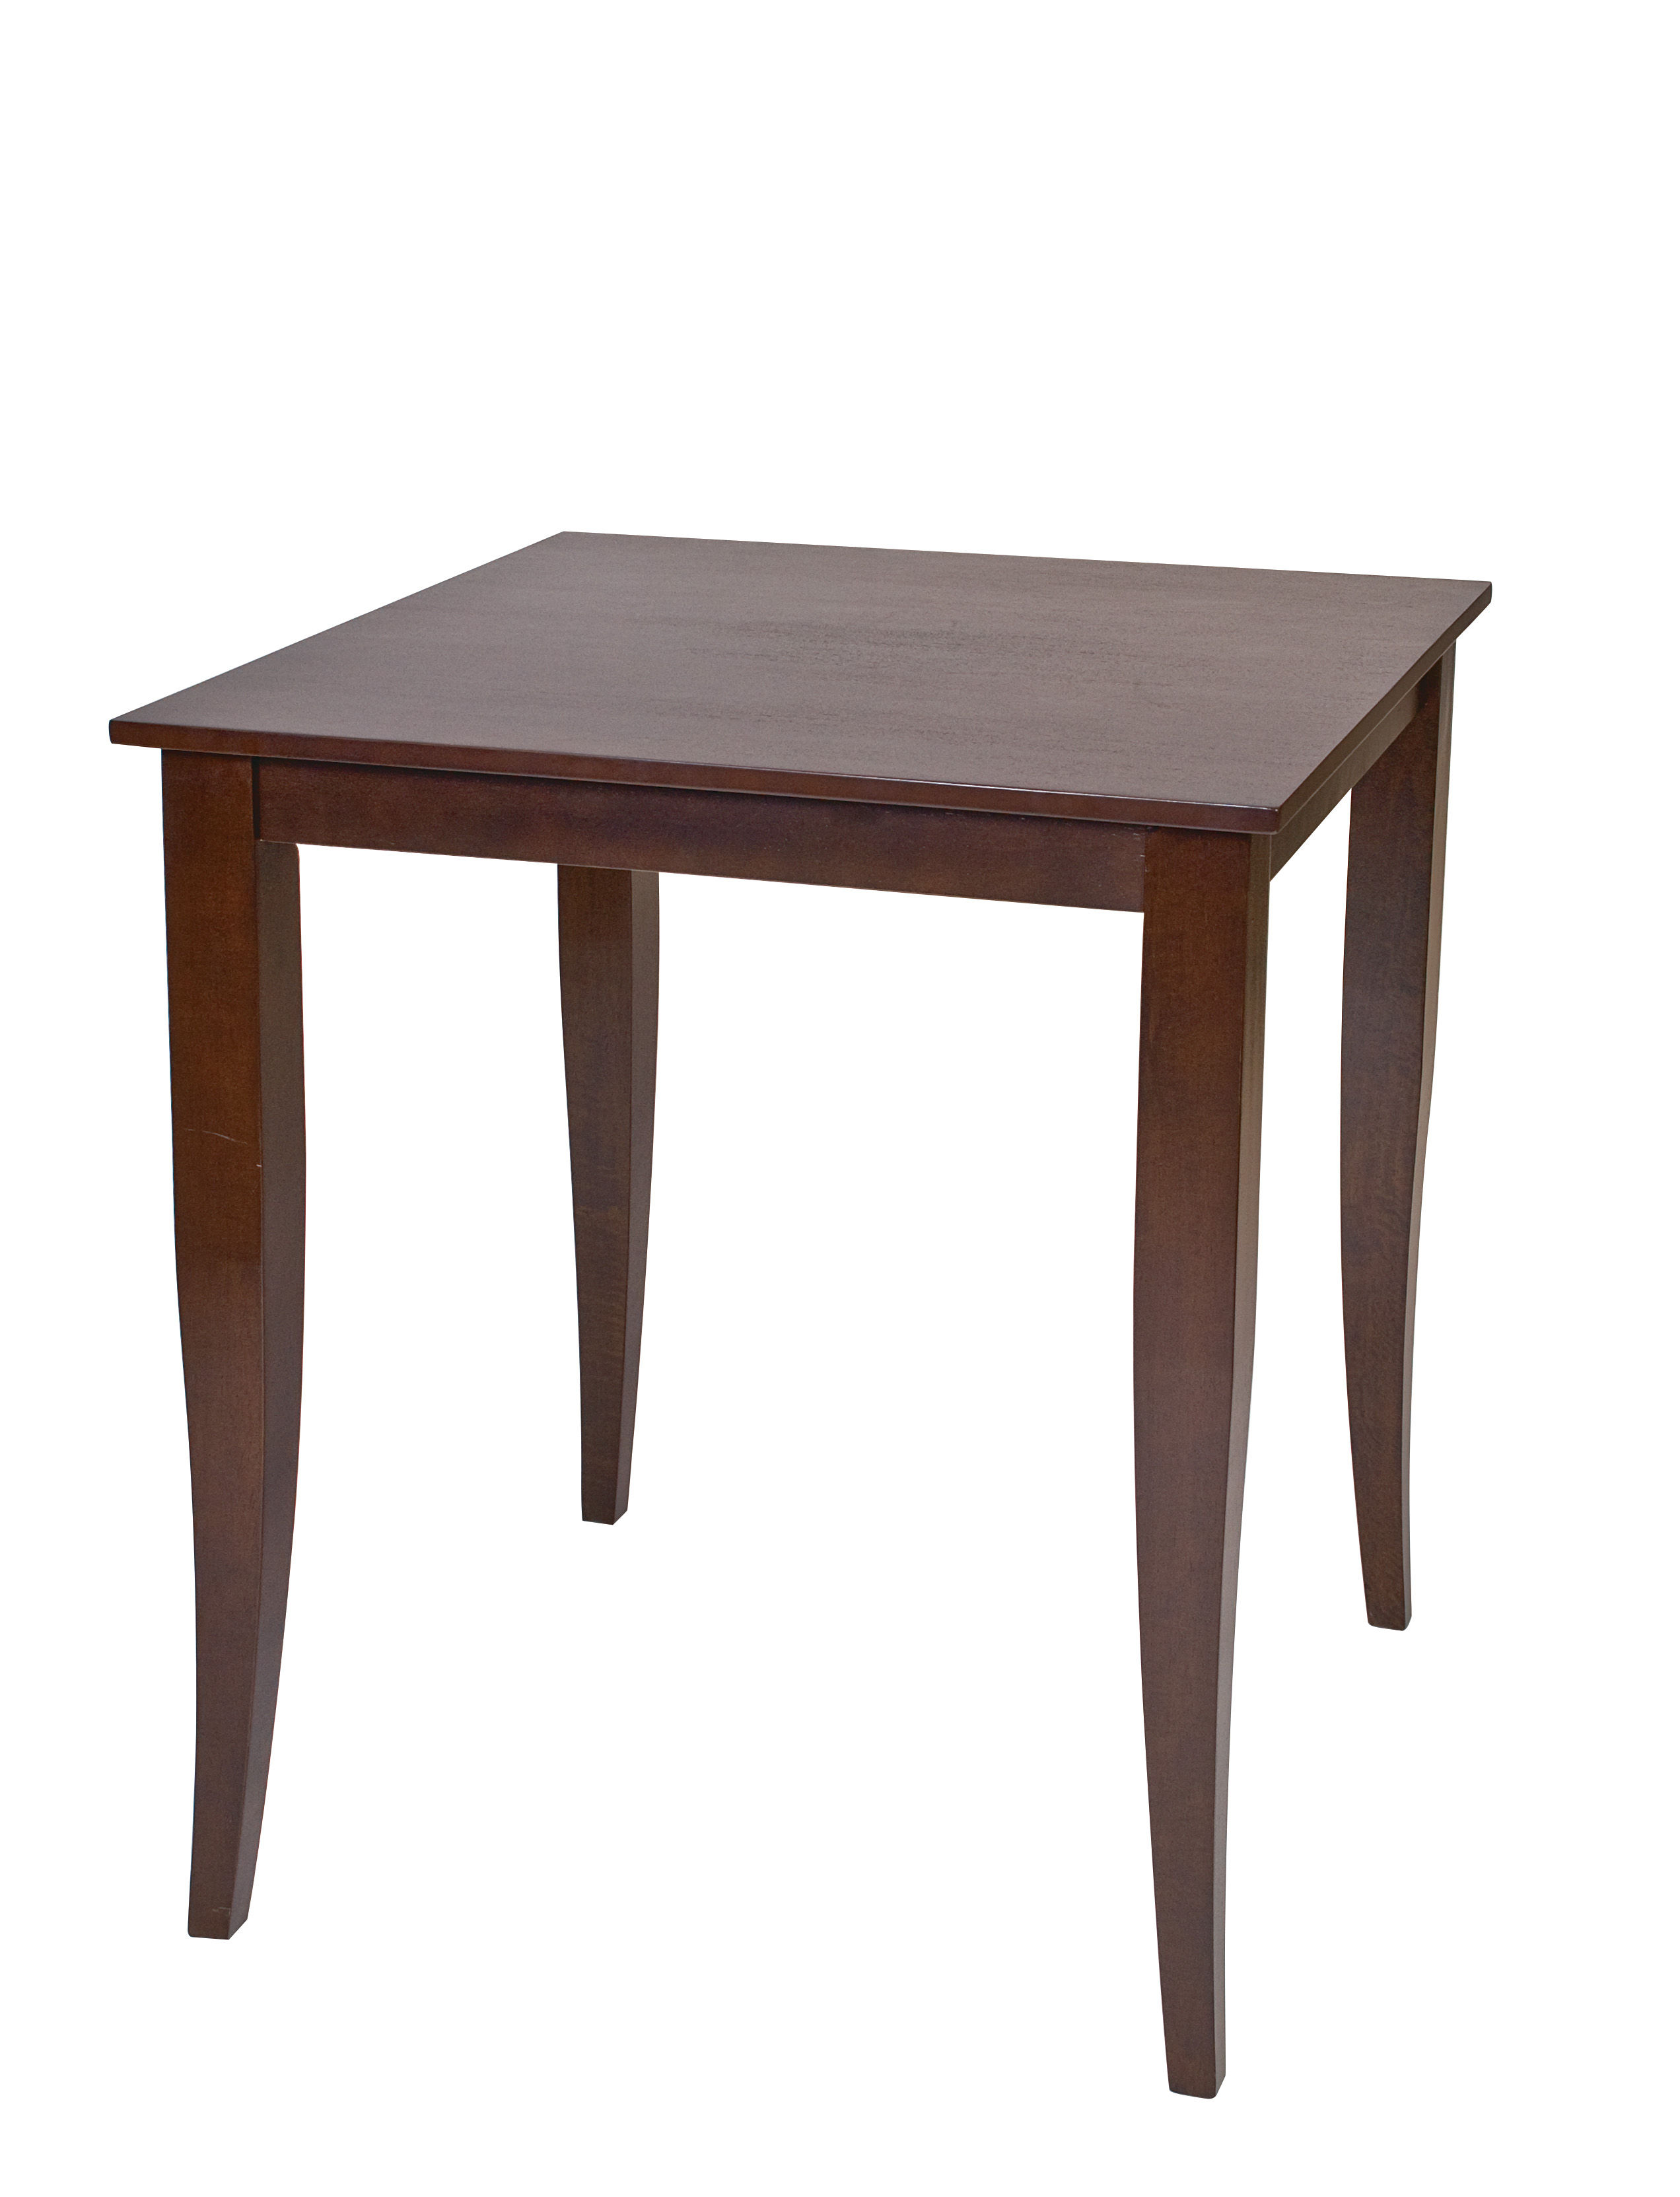 Jamestown Contemporary Espresso Wood Solid Top Pub Table The Classy Home